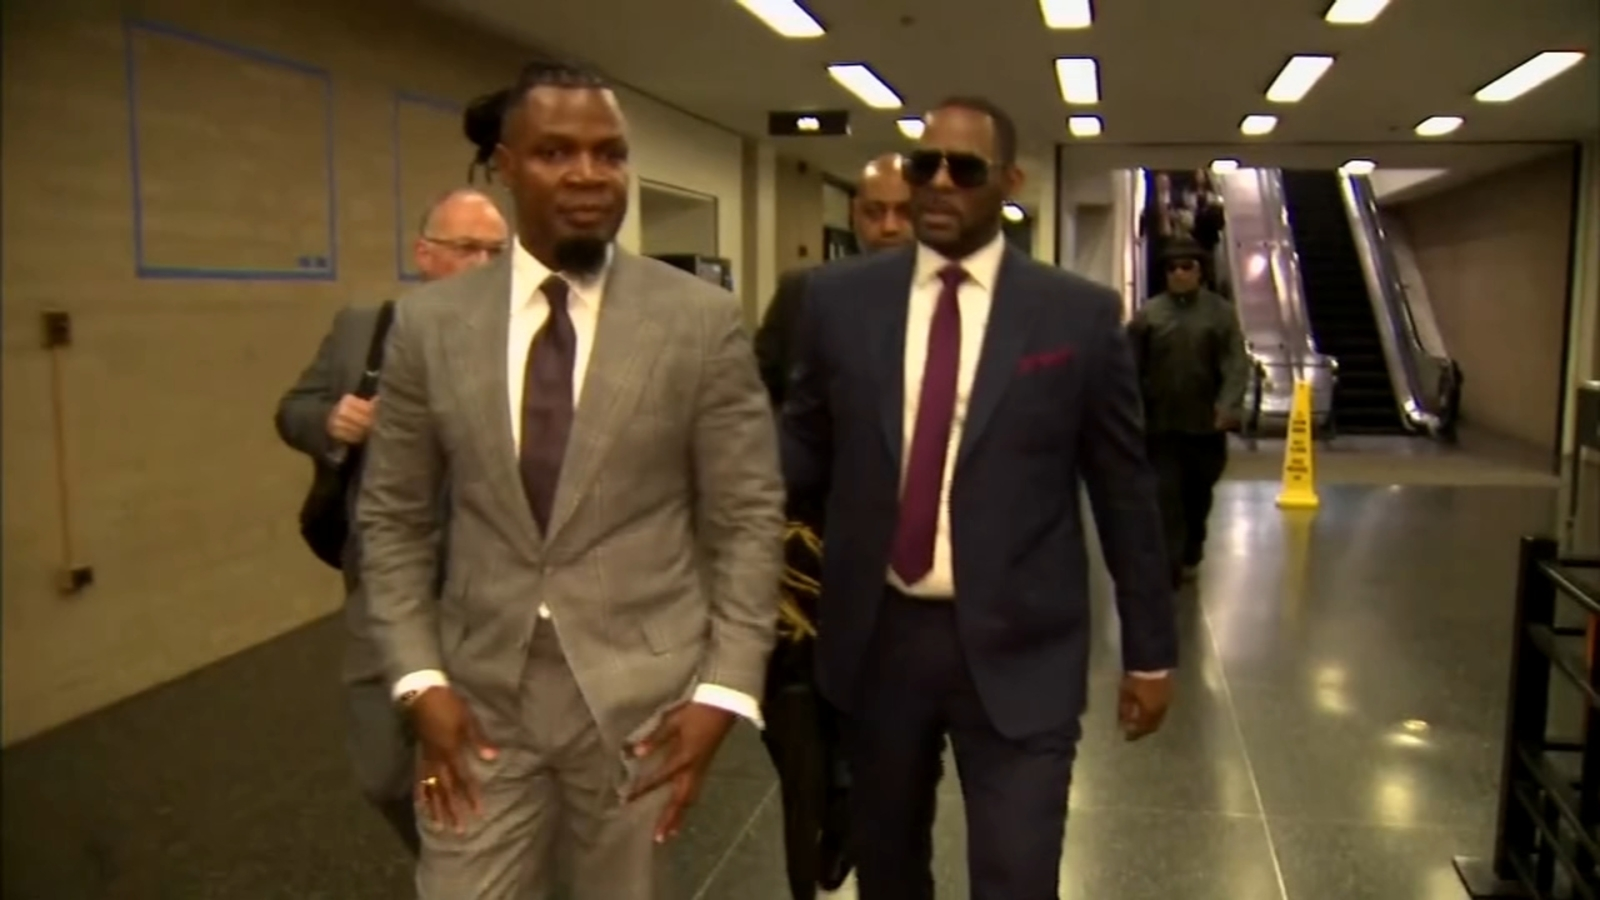 R. Kelly crisis manager Darrell Johnson stepping down